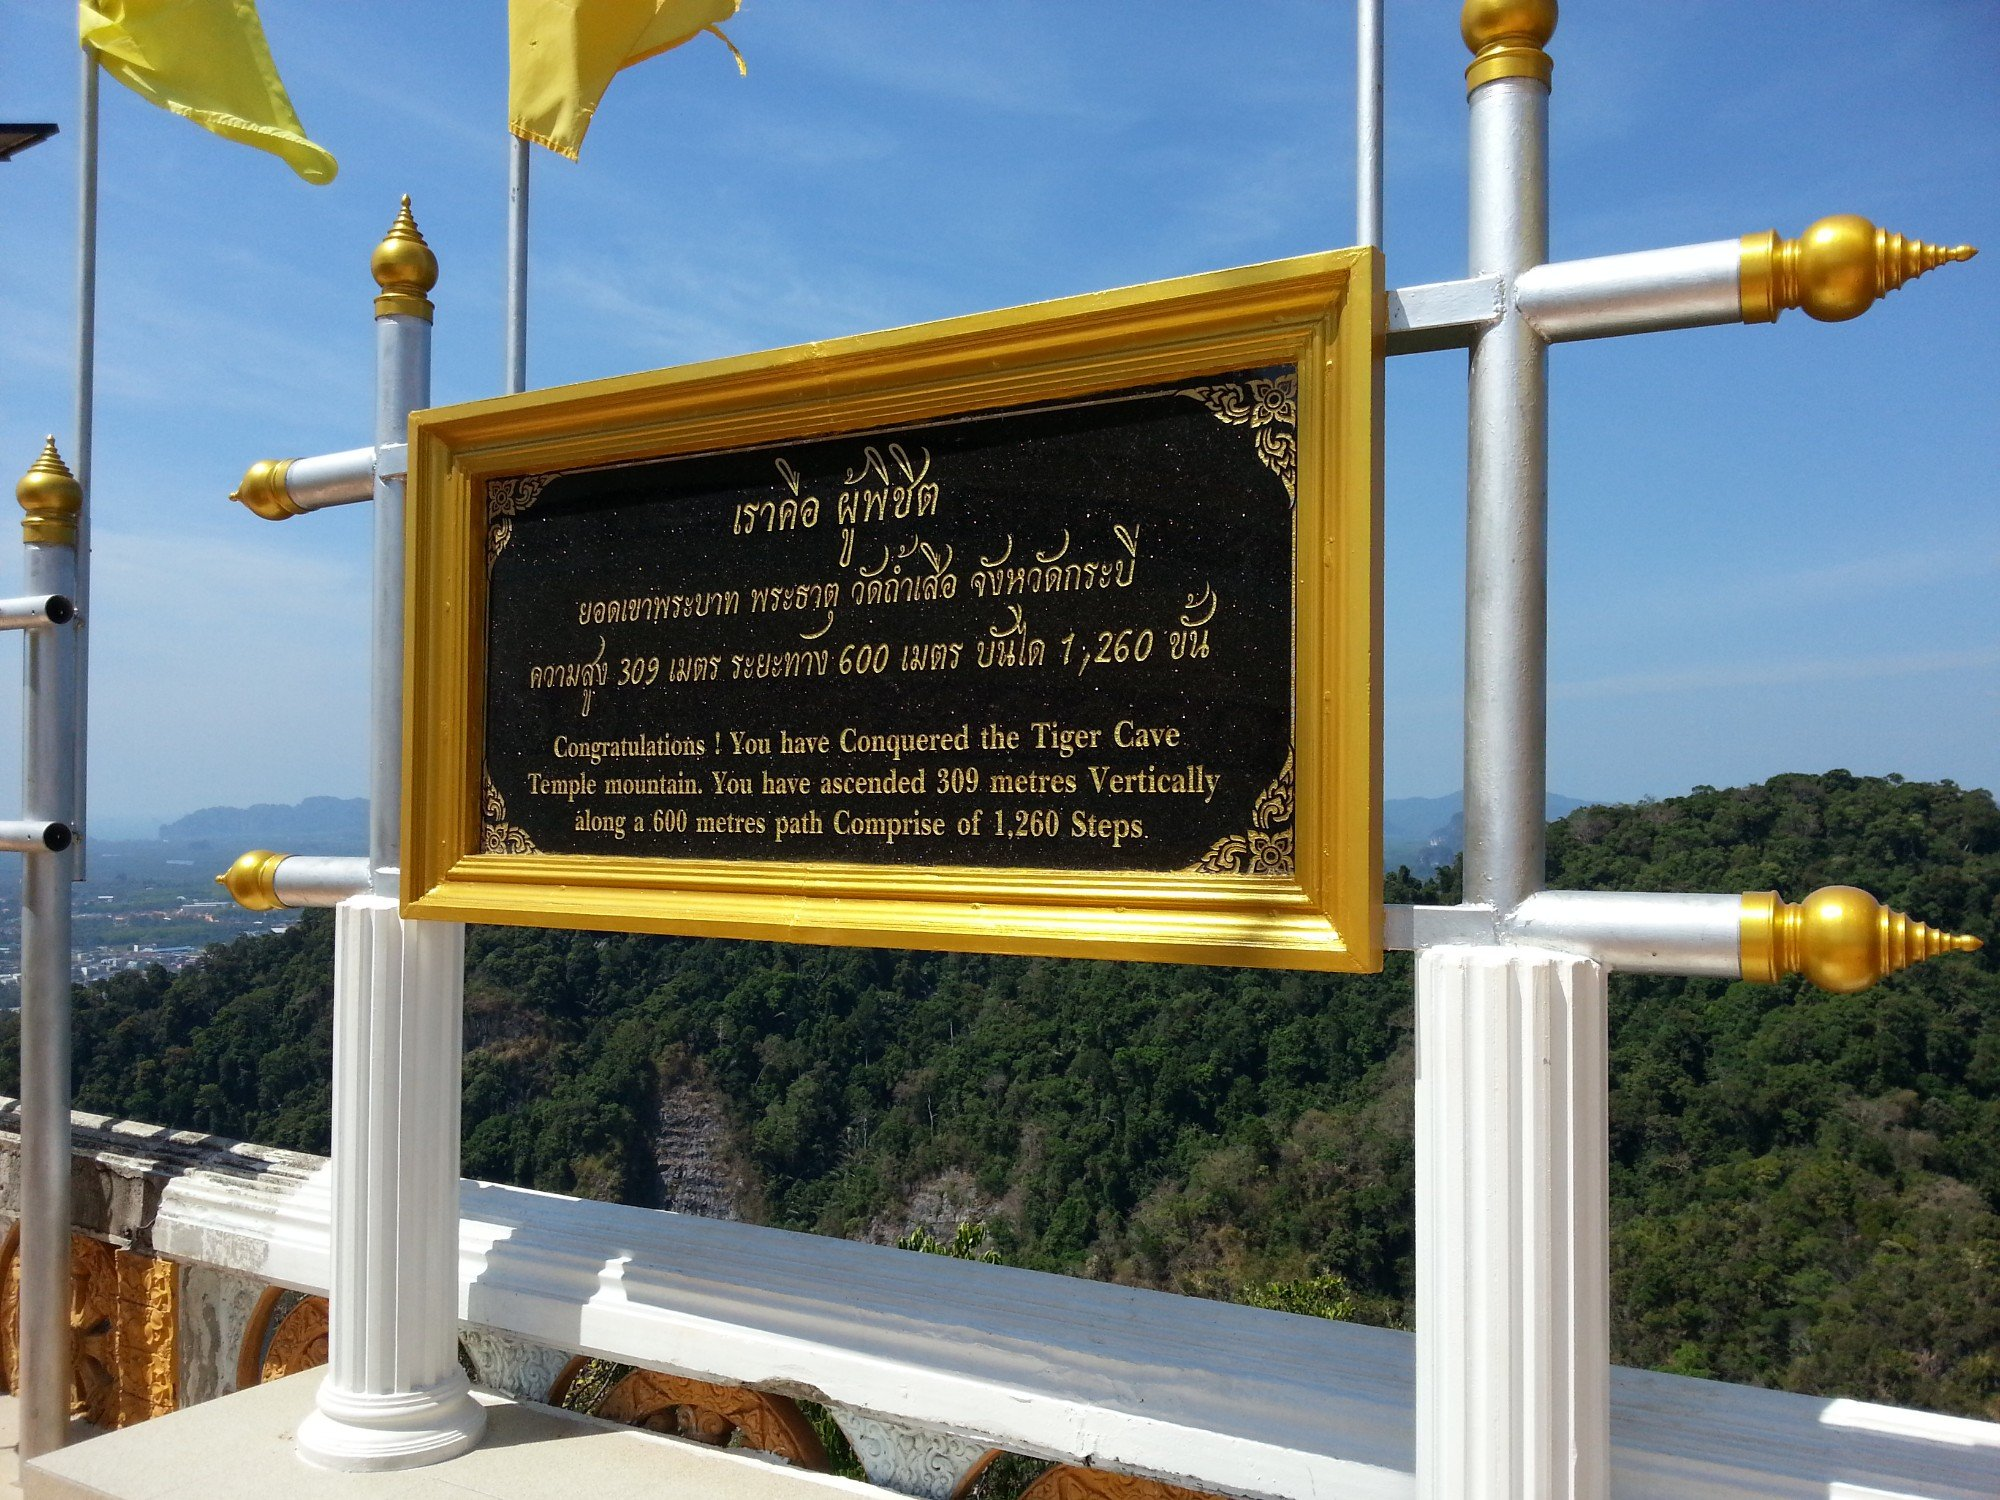 There over 1,260 steps to the temple at Wat Tham Suea